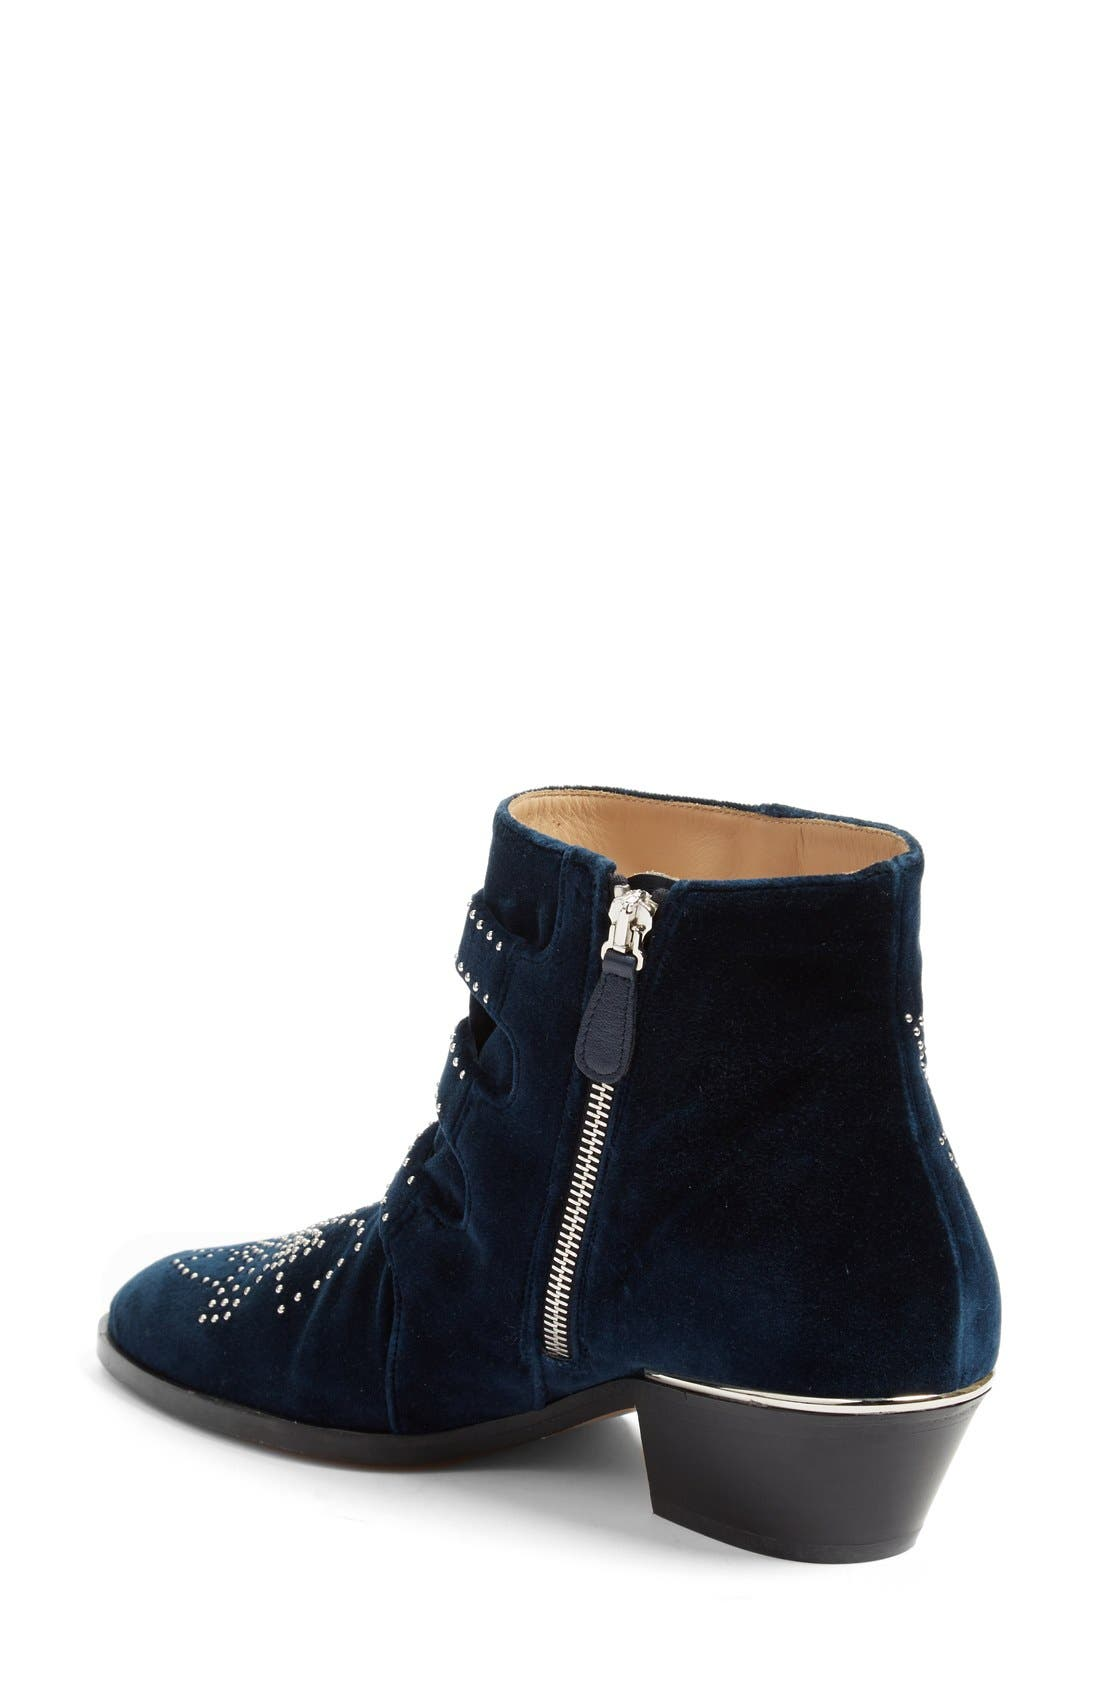 'Susan' Studded Buckle Boot,                             Alternate thumbnail 2, color,                             400